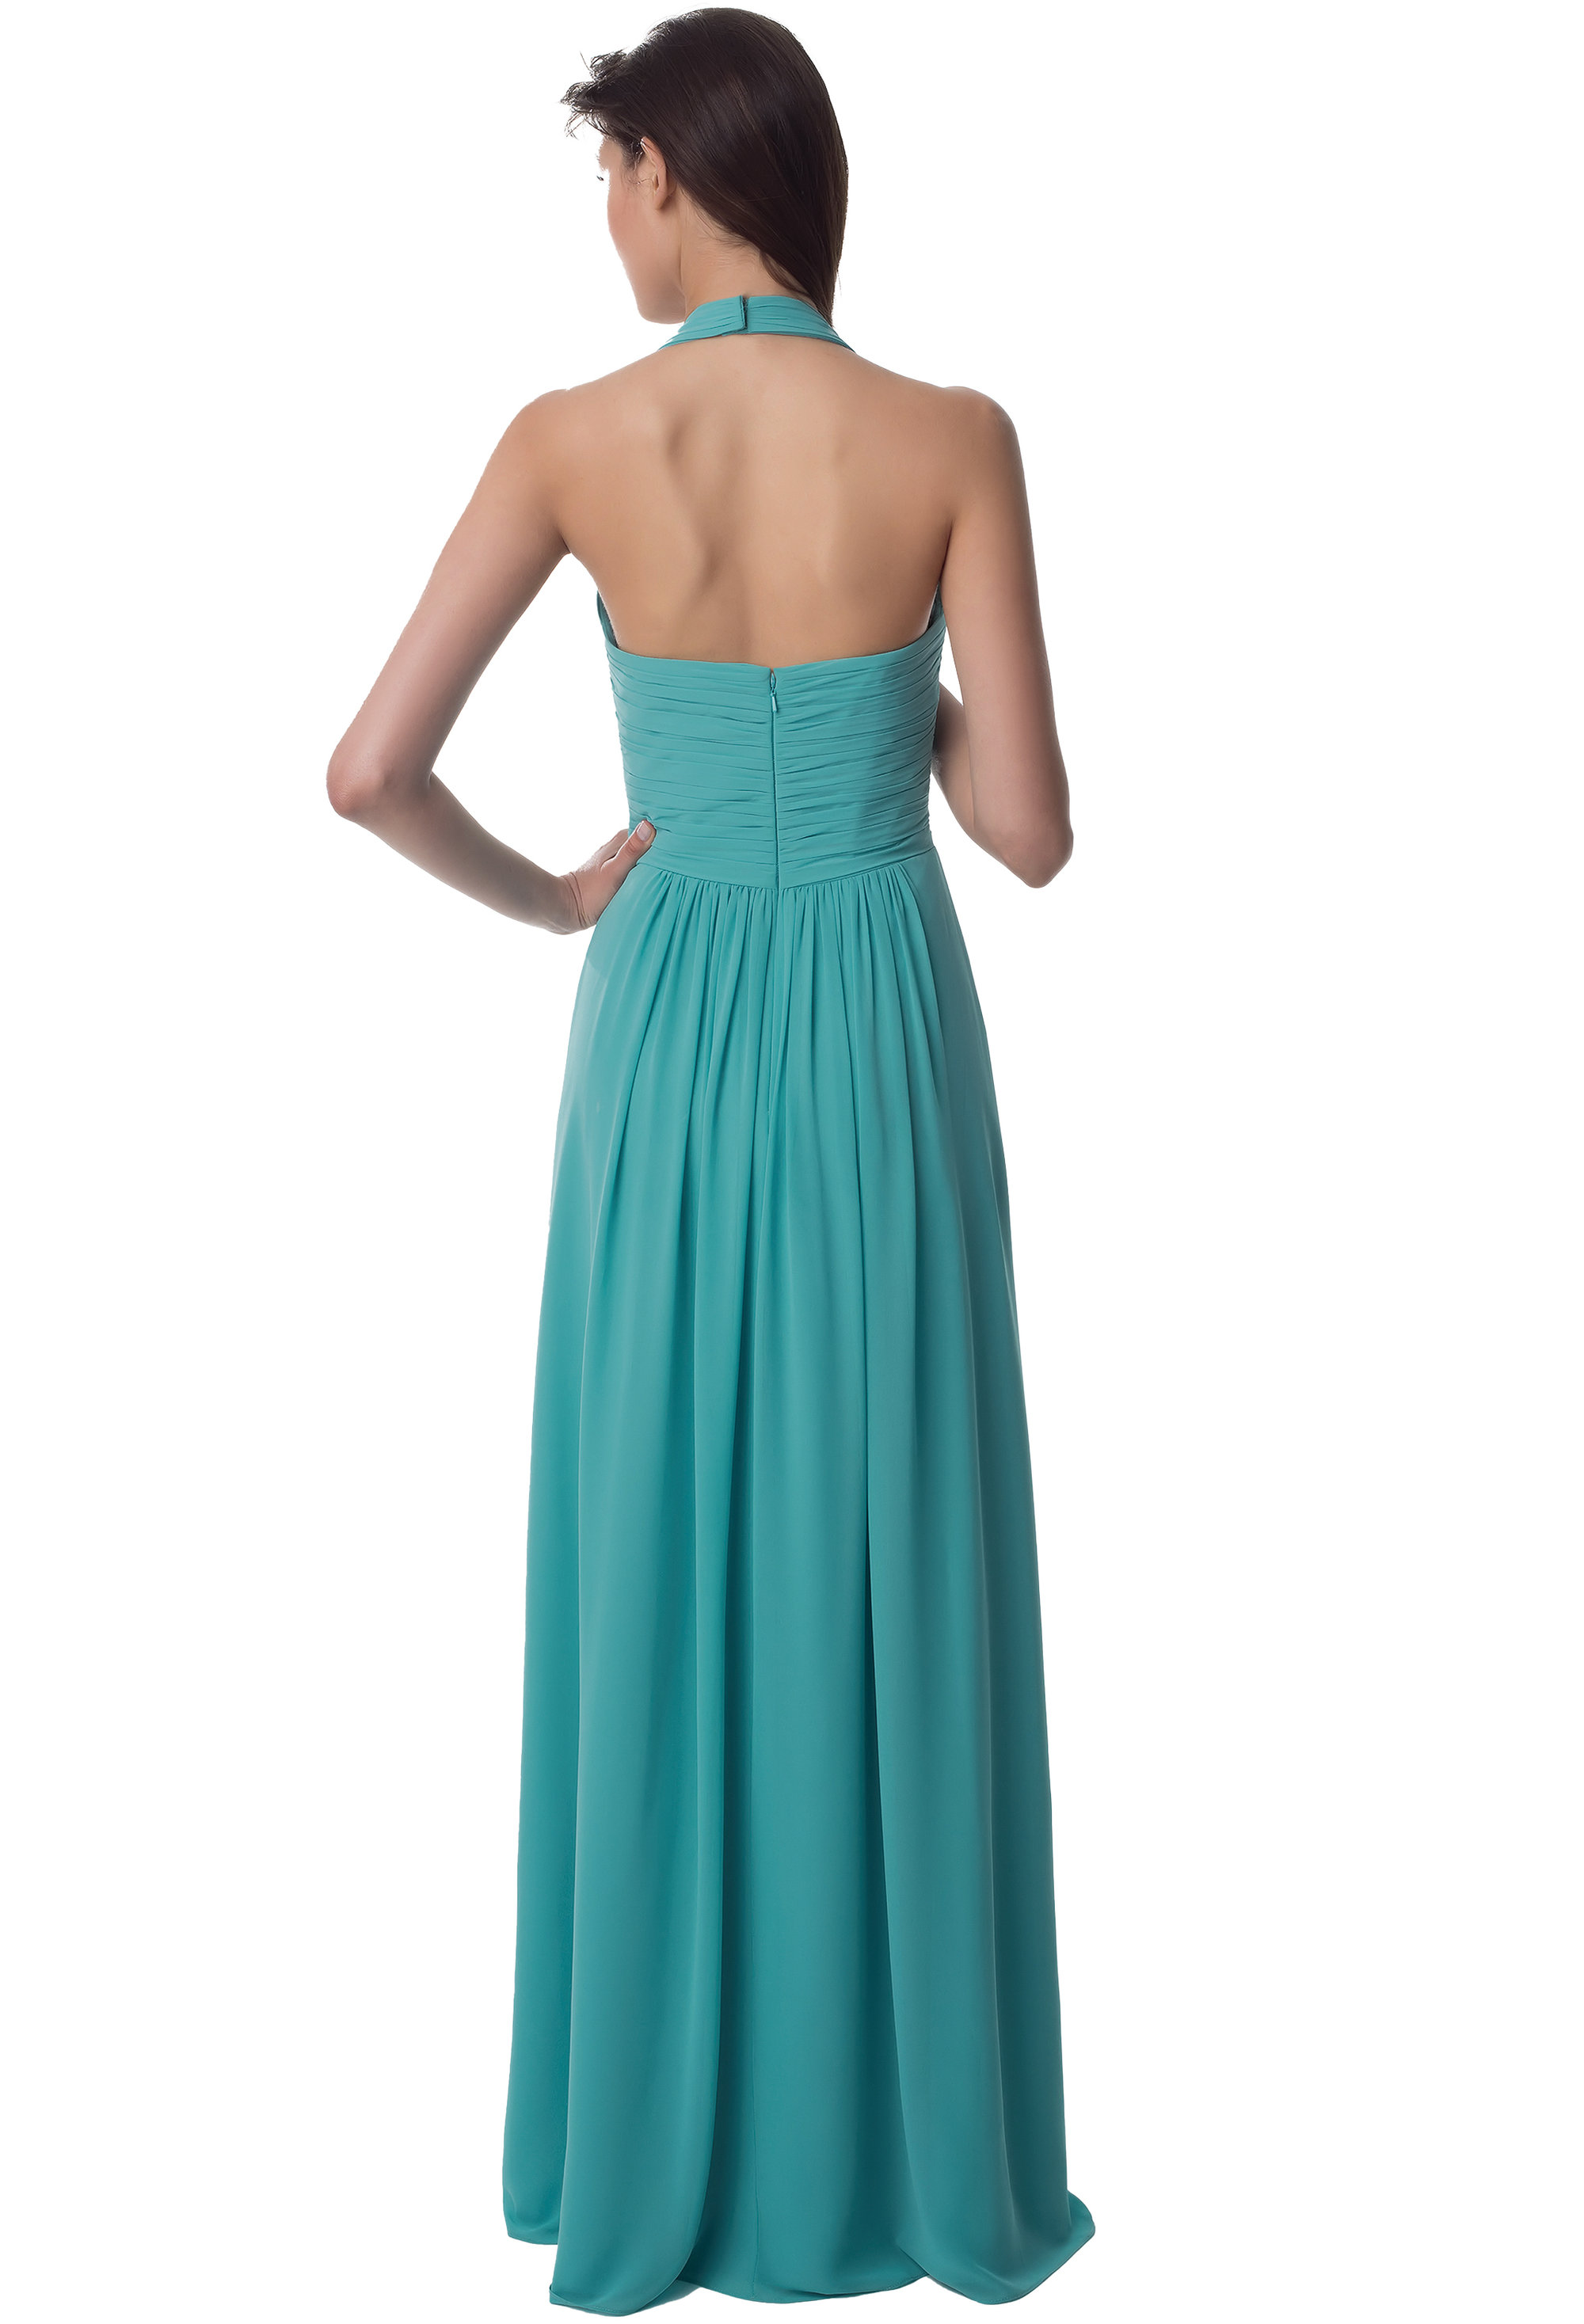 Bill Levkoff CHERRY Chiffon Sleeveless A-line gown, $220.00 Back